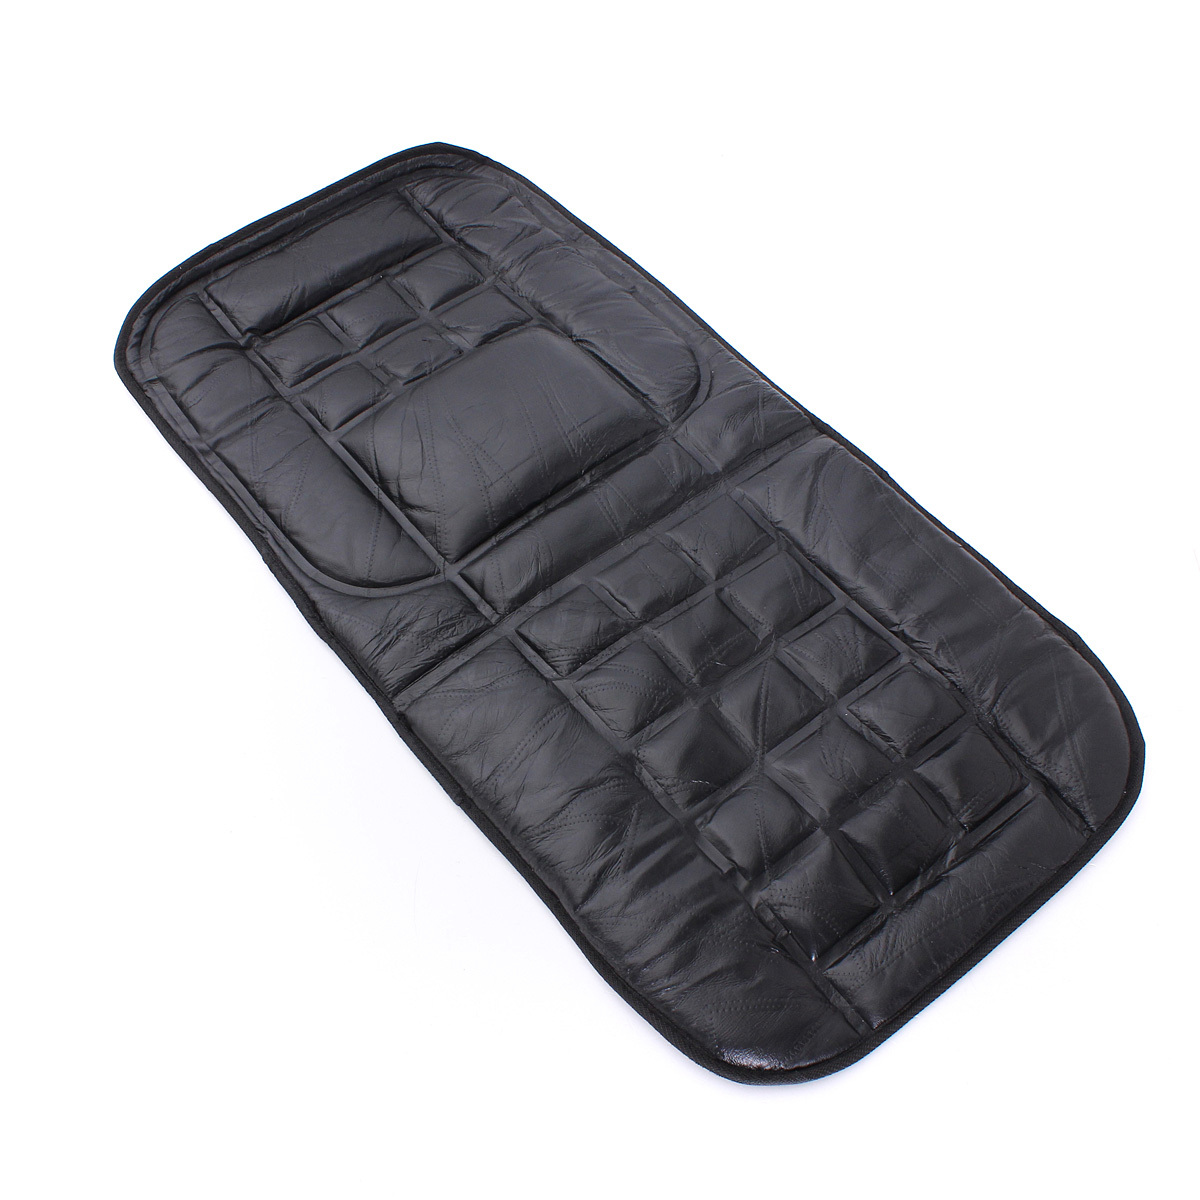 leather back support seat cover cushion chair massage car truck taxi protect us ebay. Black Bedroom Furniture Sets. Home Design Ideas